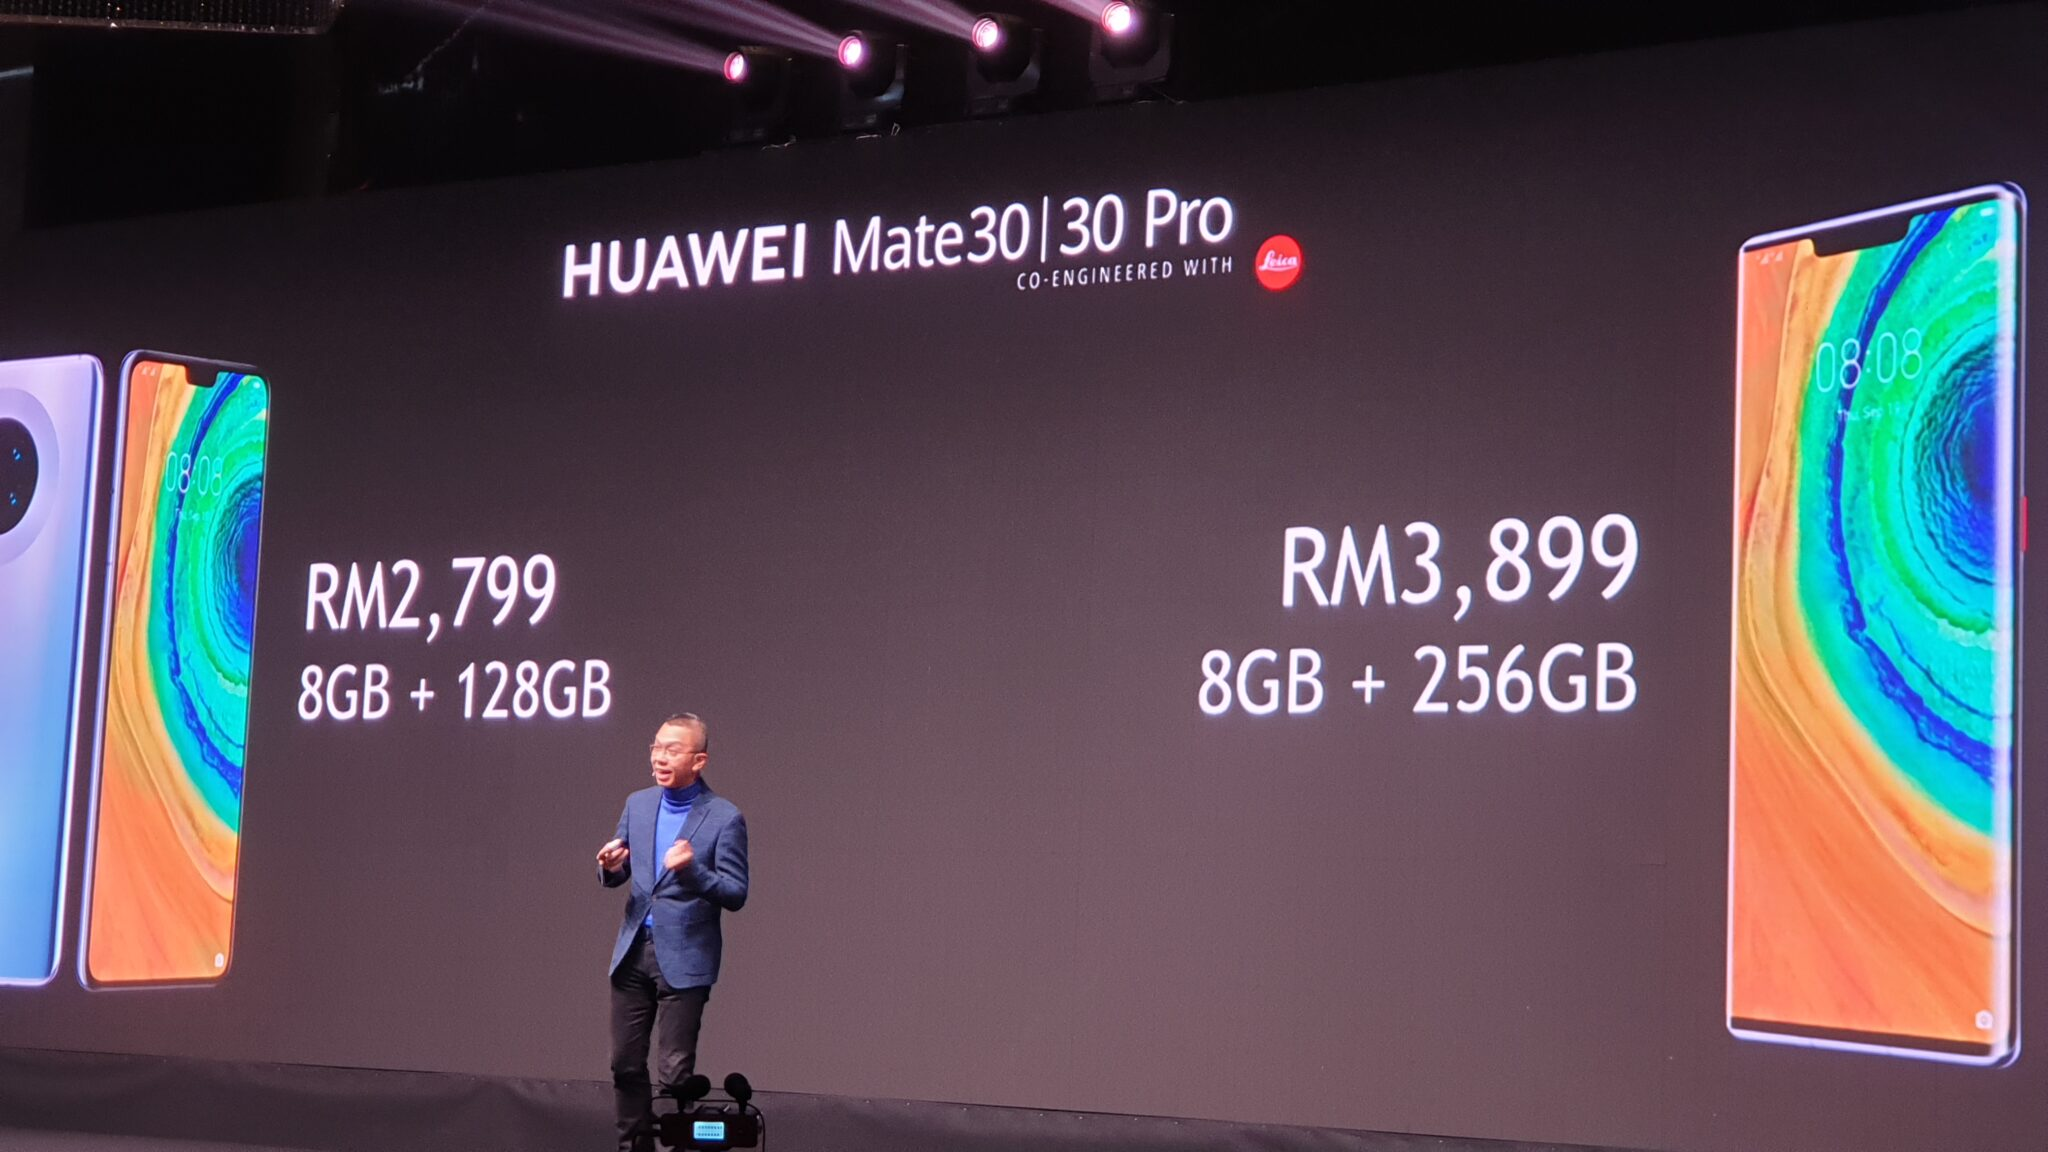 Huawei Mate 30 prices